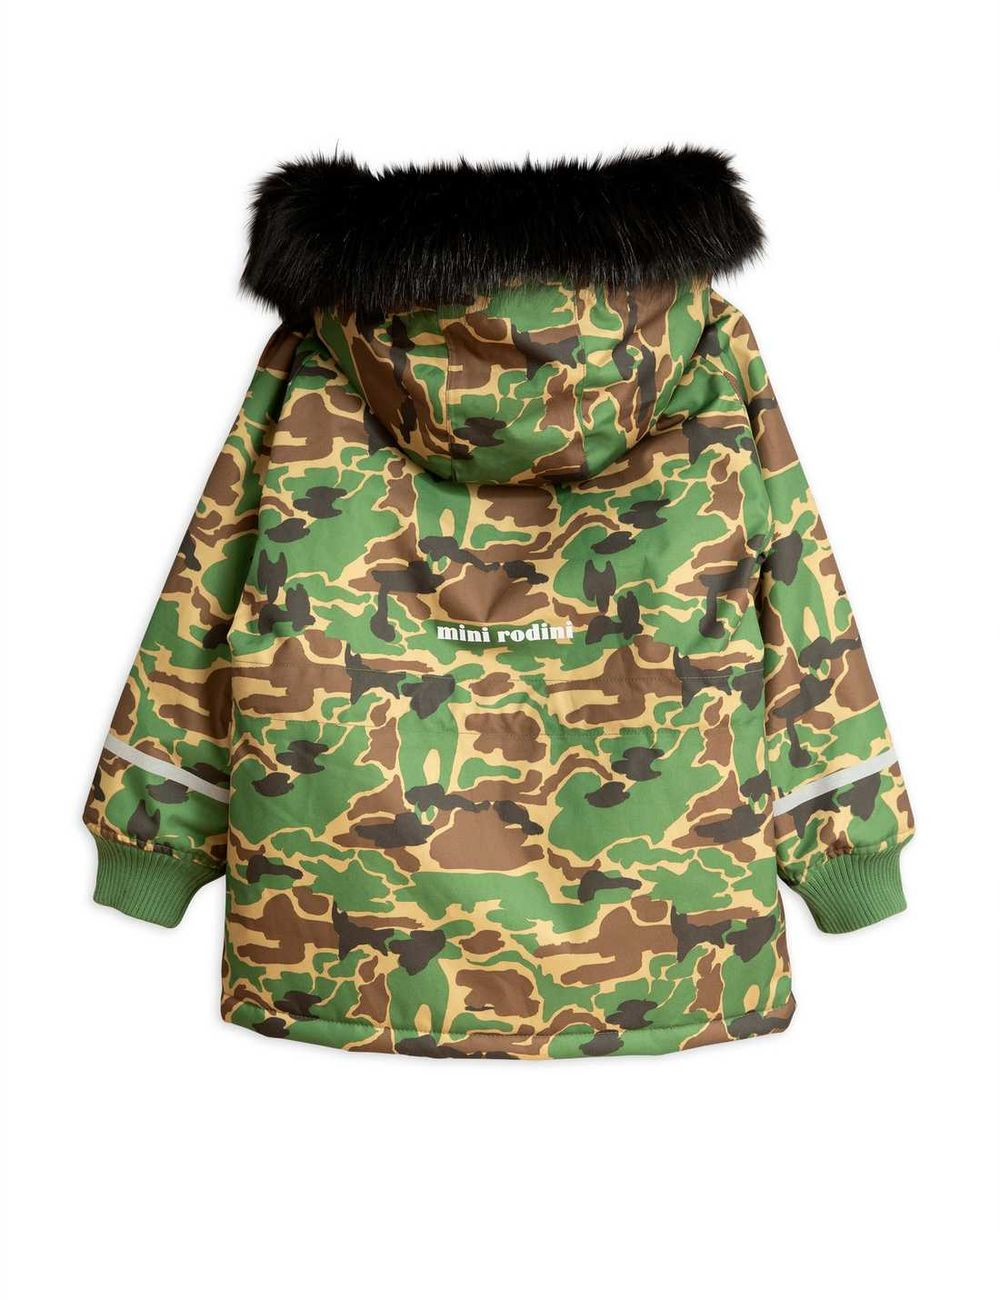 MINI RODINI K2 CAMO PARKA, GREEN